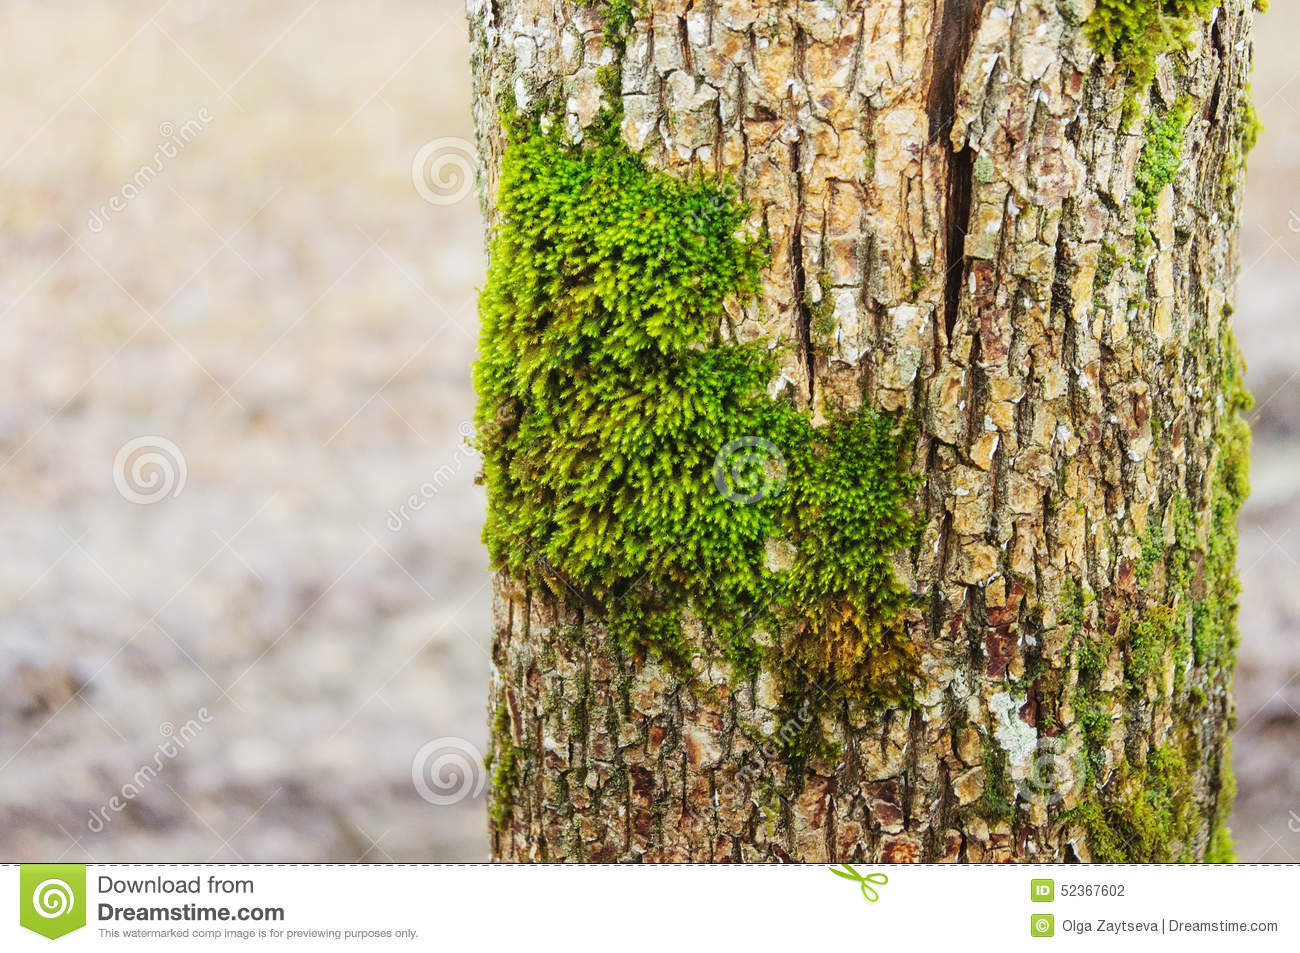 Image Result For How To Remove Mold From Wood